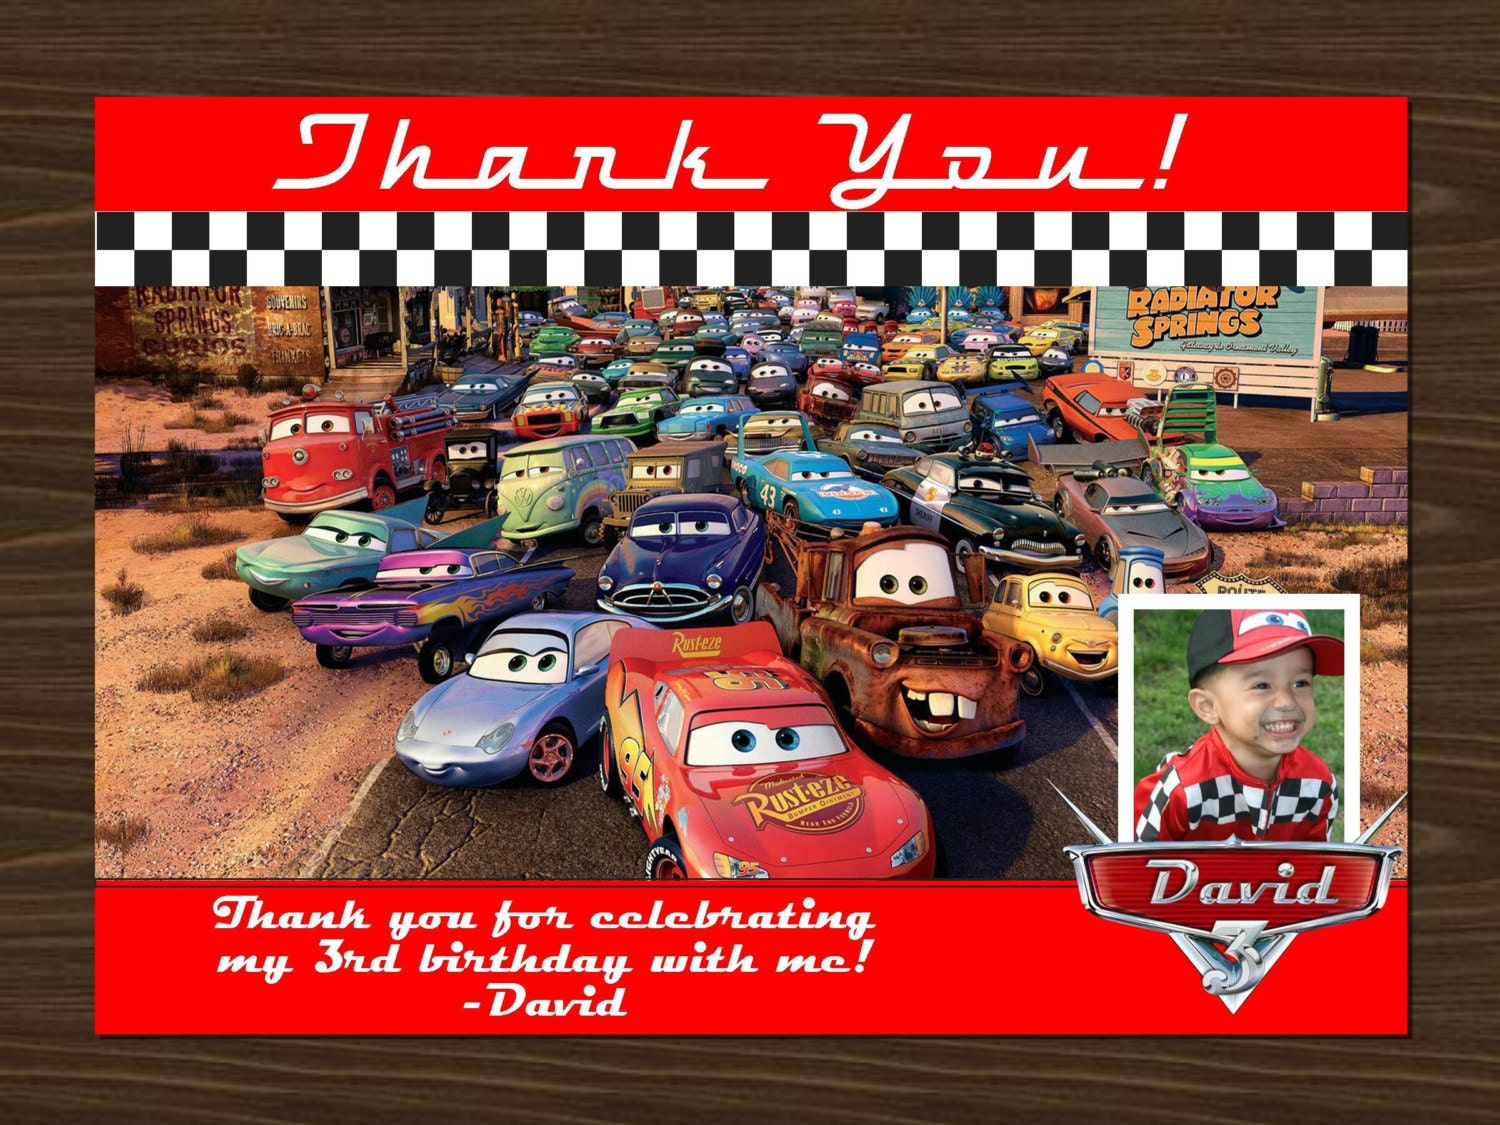 mcqueen invitation disney s cars thank you card photo and personalized logo 5x7 mcqueen and all cars thank you card picture digital printable file